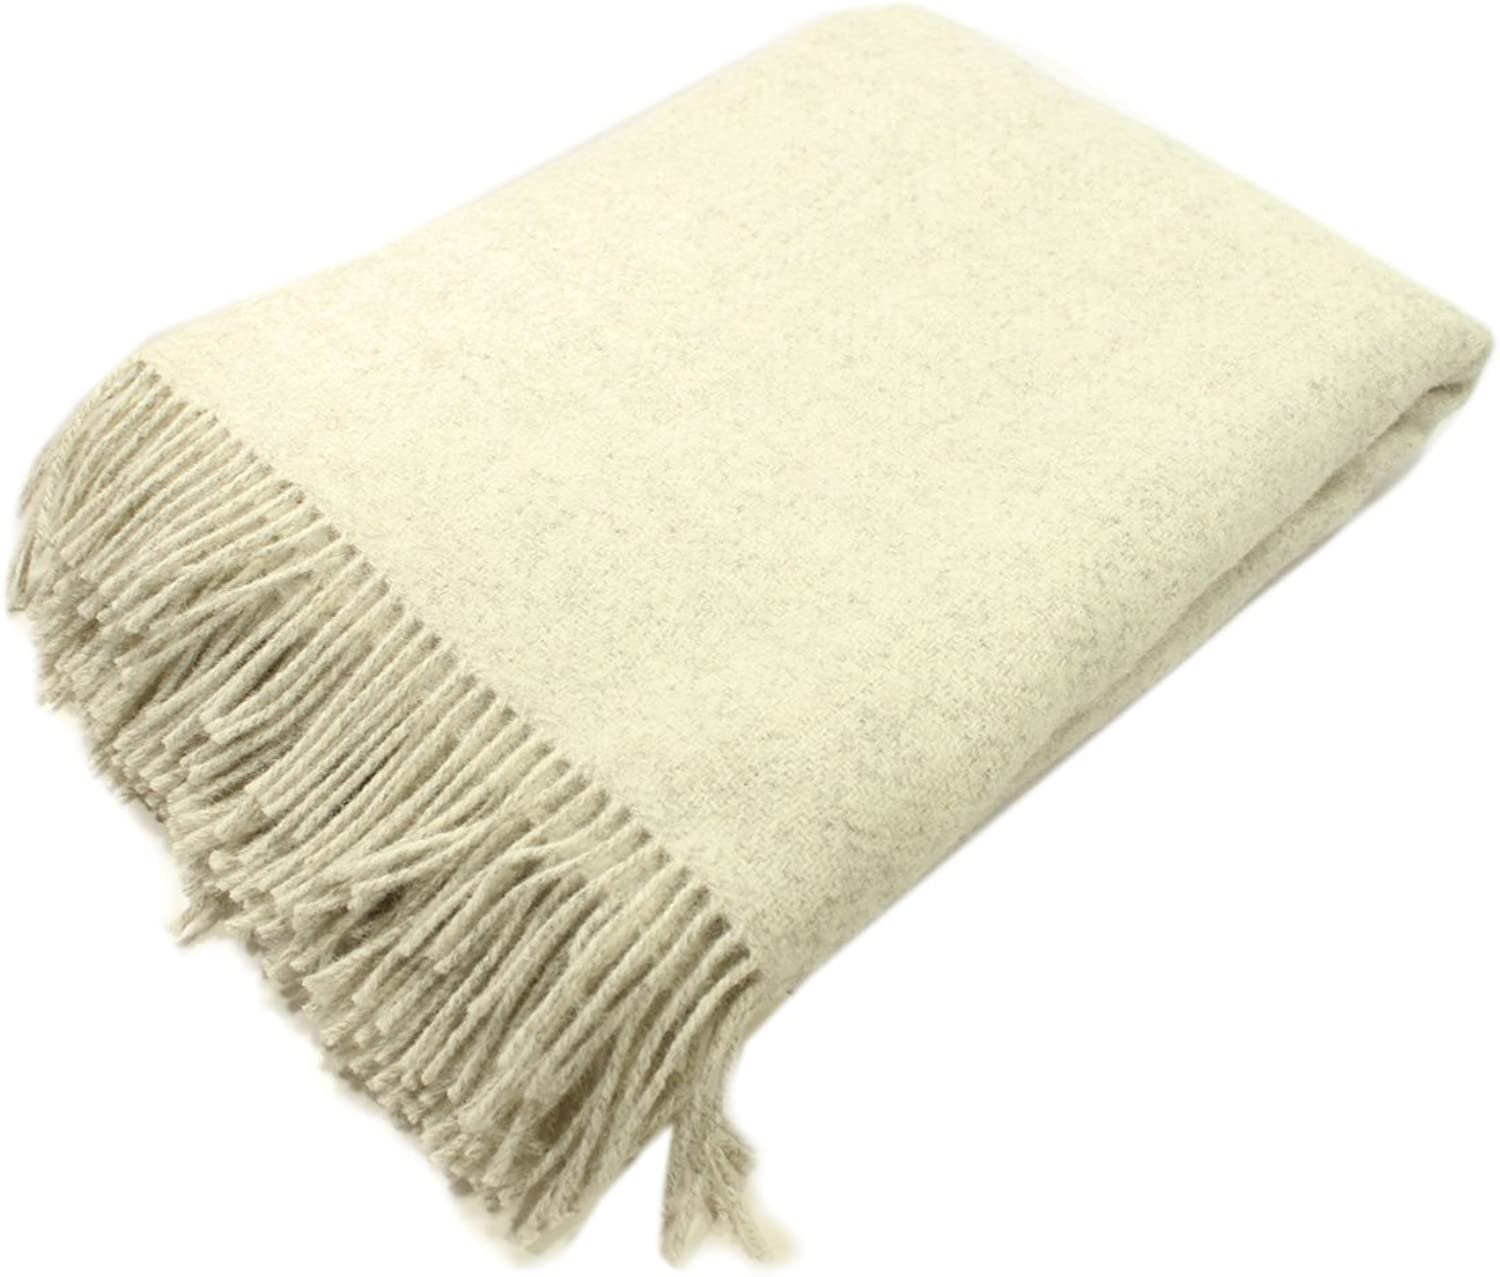 "Biddy Murphy Irish Wool Blanket 100% Natural Lambswool Non-Dyed Throw 71"" Long by 52"" Wide Fringed Soft and Warm Woven Home Décor Made in Ireland"